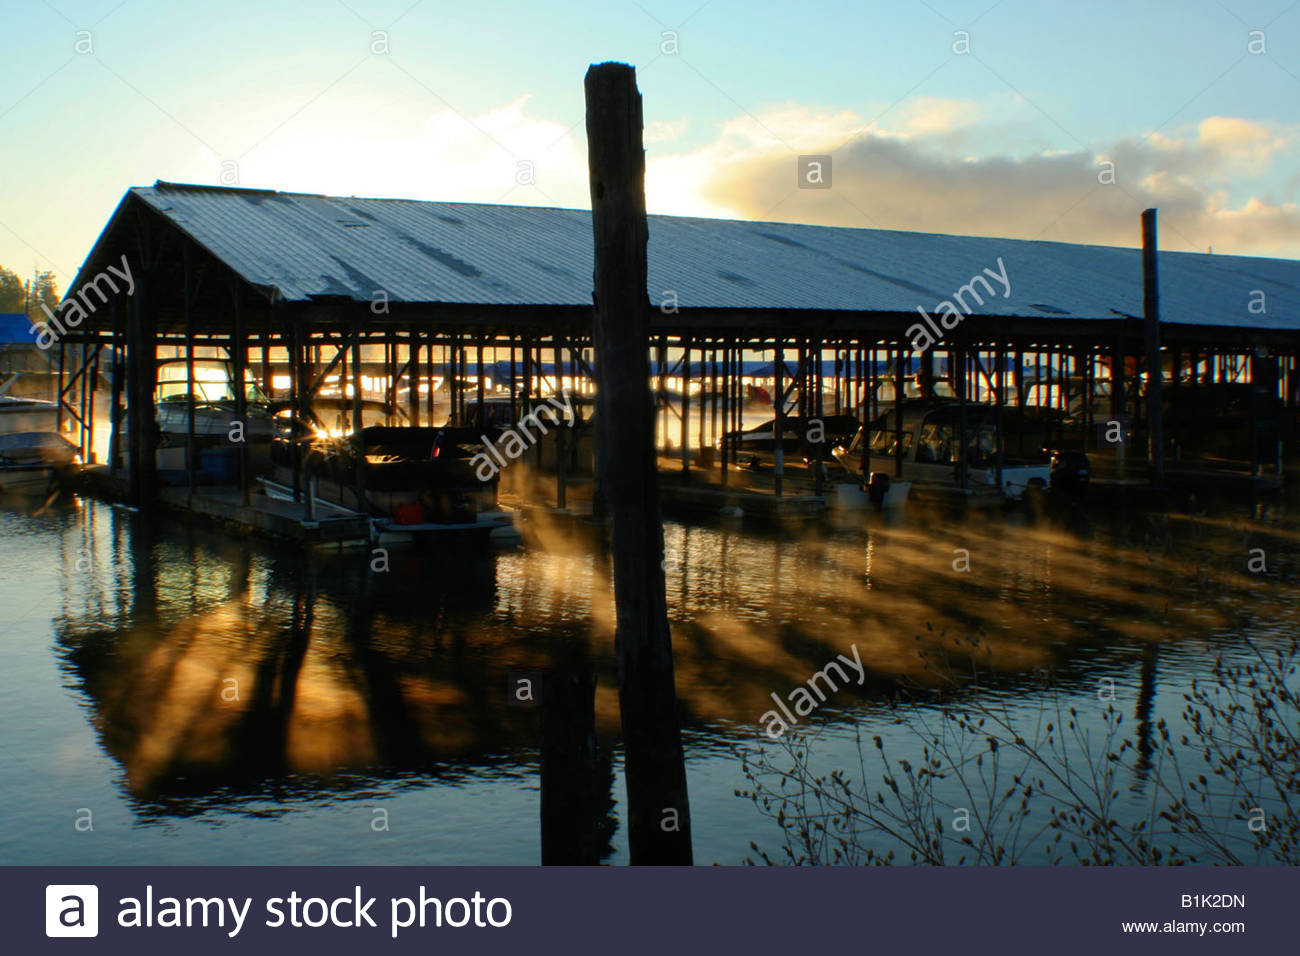 Sunlight shines through a covered marina and reflects off the water on a early winter morning. - Stock Image